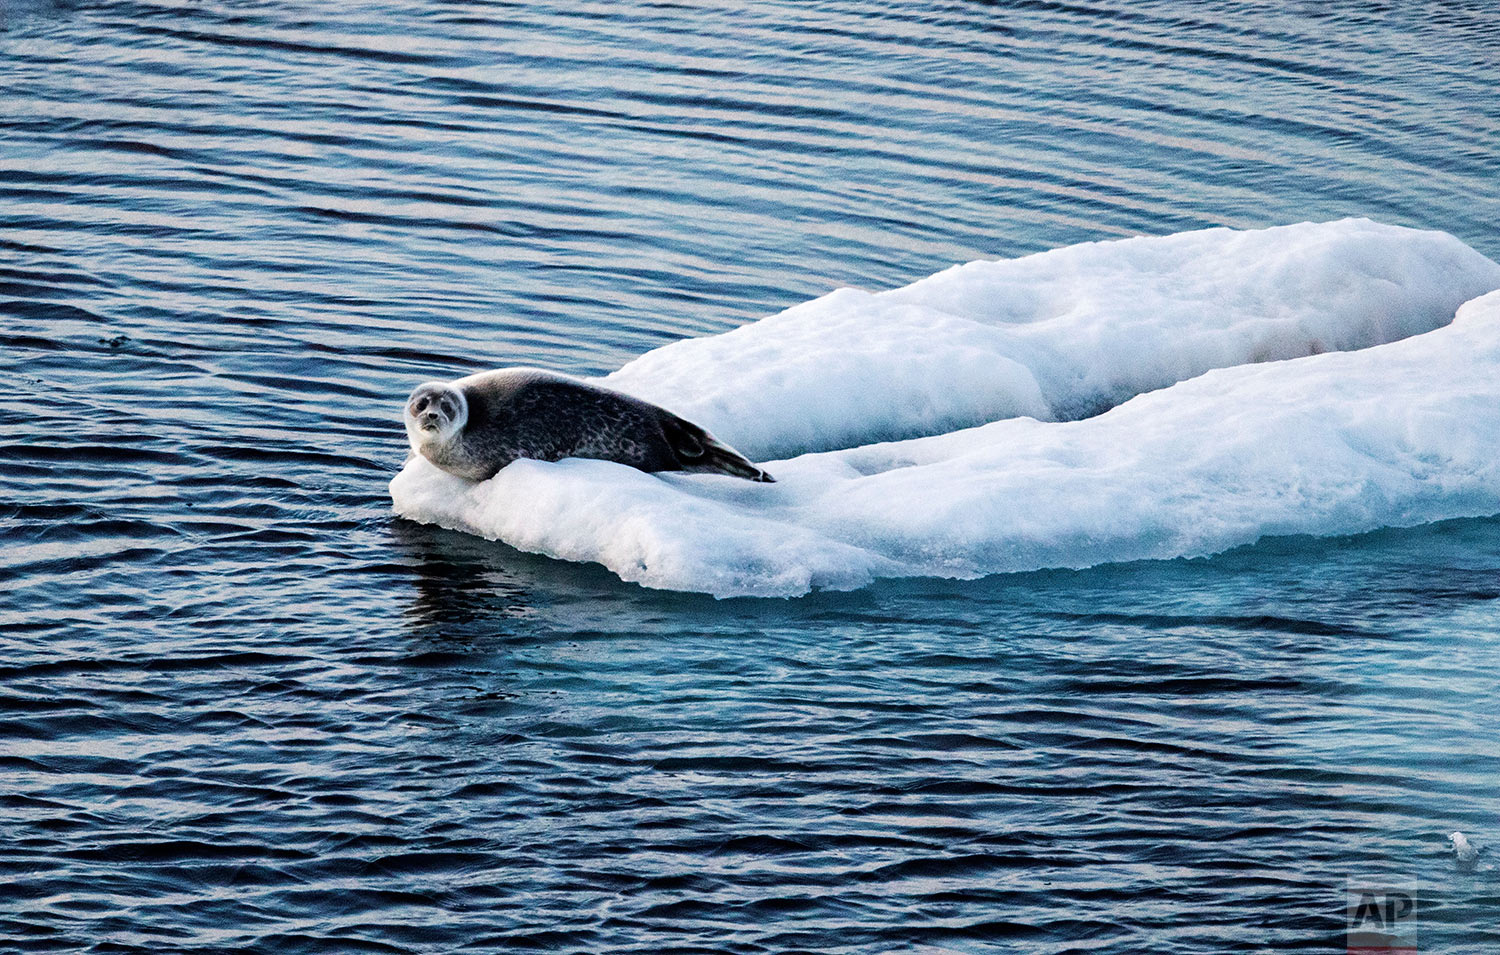 """A seal sits on sea ice floating in the Victoria Strait in the Canadian Arctic Archipelago, Friday, July 21, 2017. """"People are so far removed from the Arctic that they don't understand it, they don't know it and they don't love it,"""" said Paula von Weller, a field biologist who was on the trip. """"I think it's important for people to see what's here and to fall in love with it and have a bond and want to protect it."""" (AP Photo/David Goldman)"""